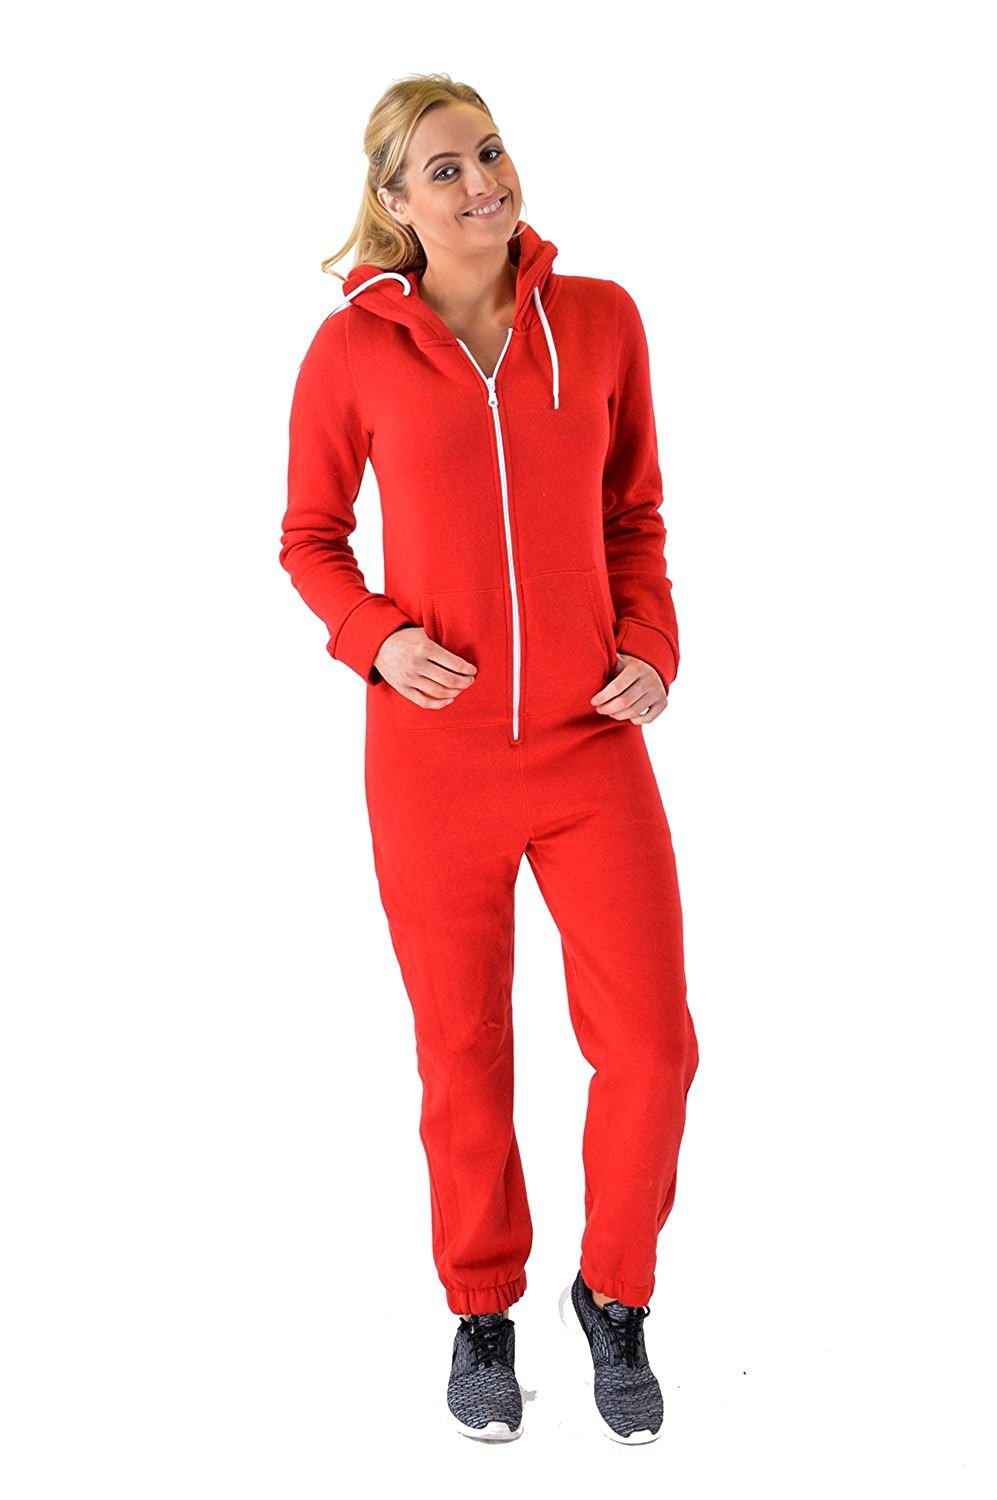 0d5cd713b0ad Get Quotations · Women Ladies All In One Plain Thick Fleece Onesie Jumpsuit  Tracksuit